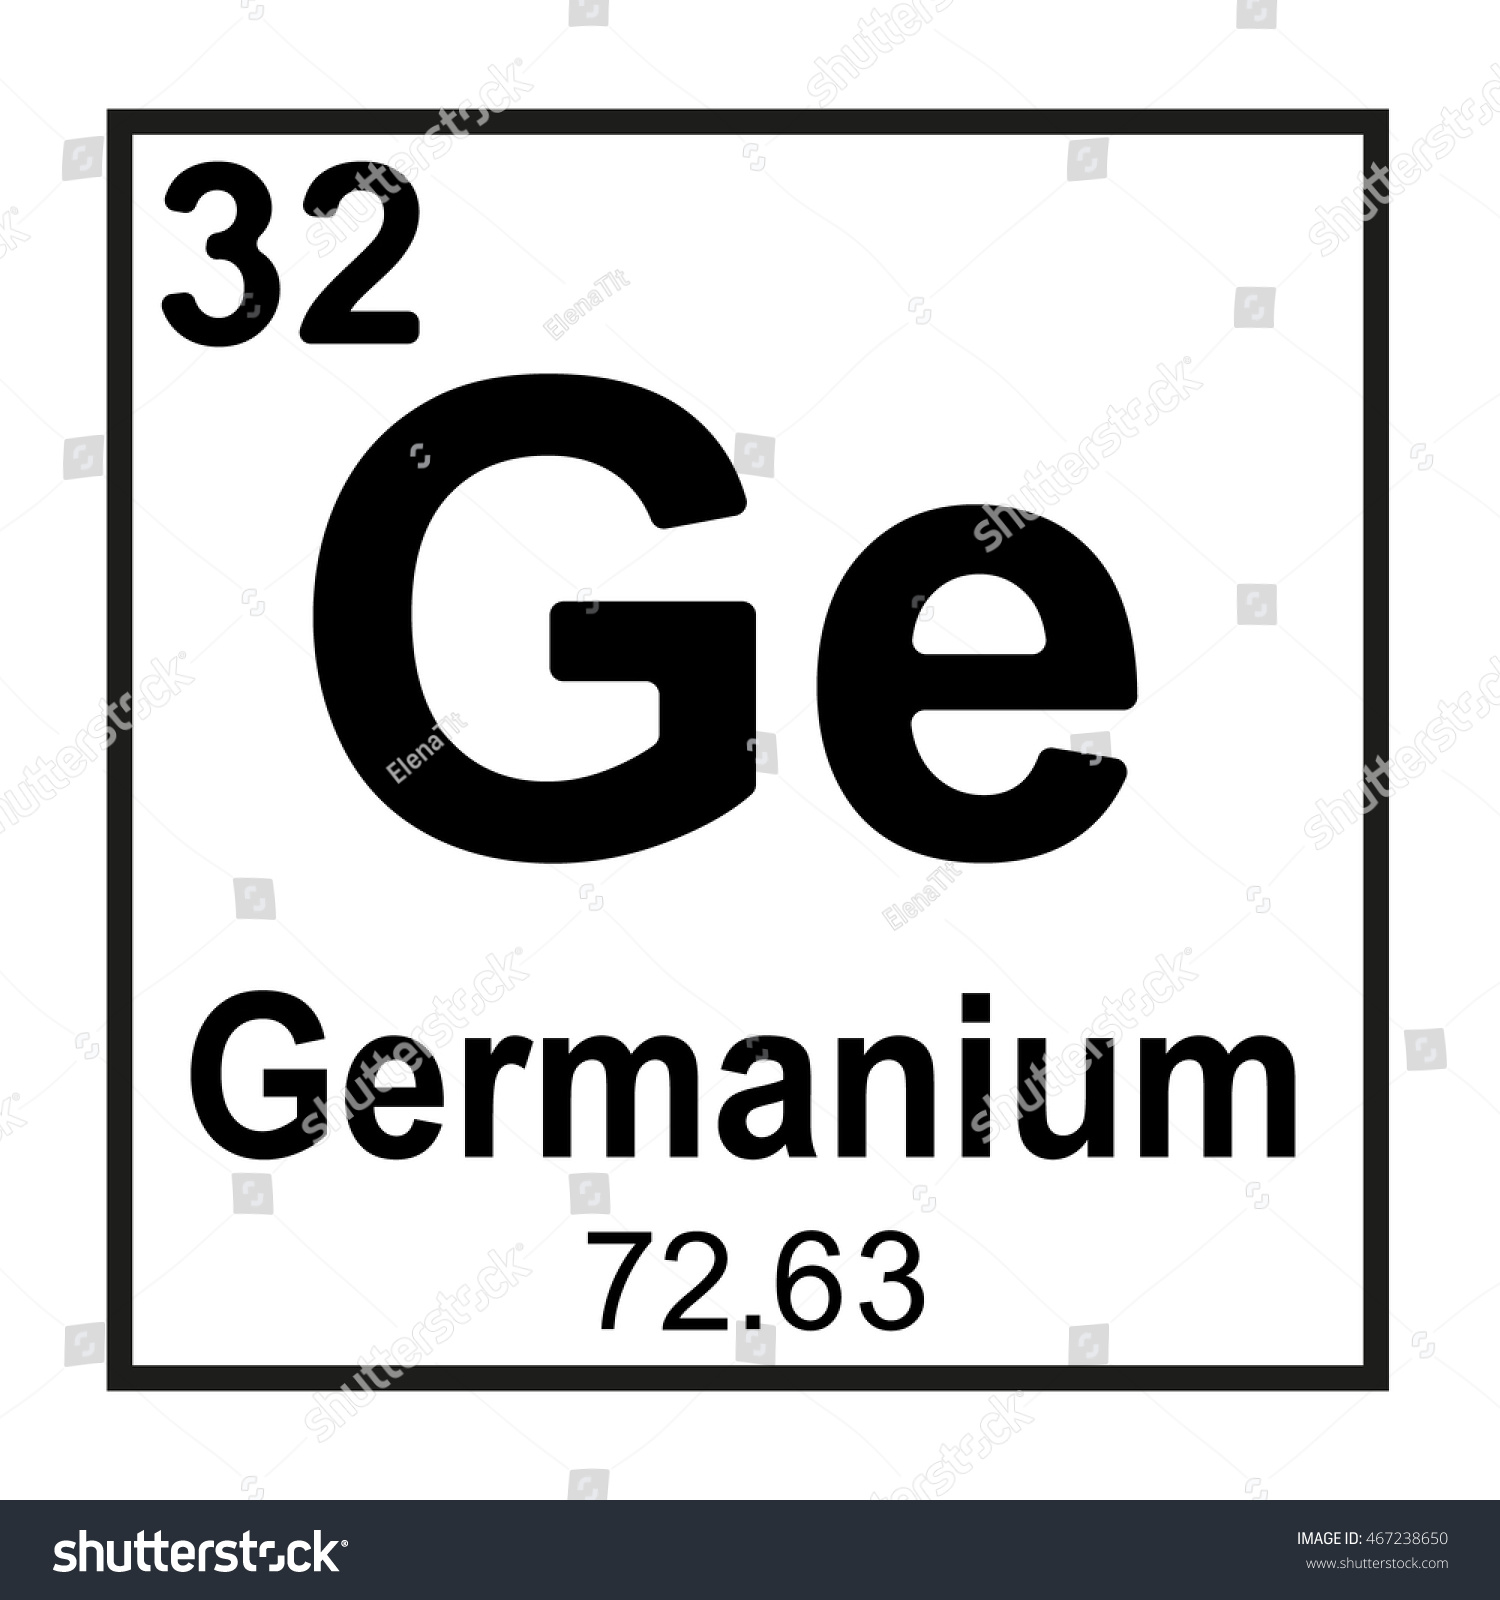 Germanium periodic table gallery periodic table images germanium periodic table image collections periodic table images germanium periodic table choice image periodic table images gamestrikefo Image collections